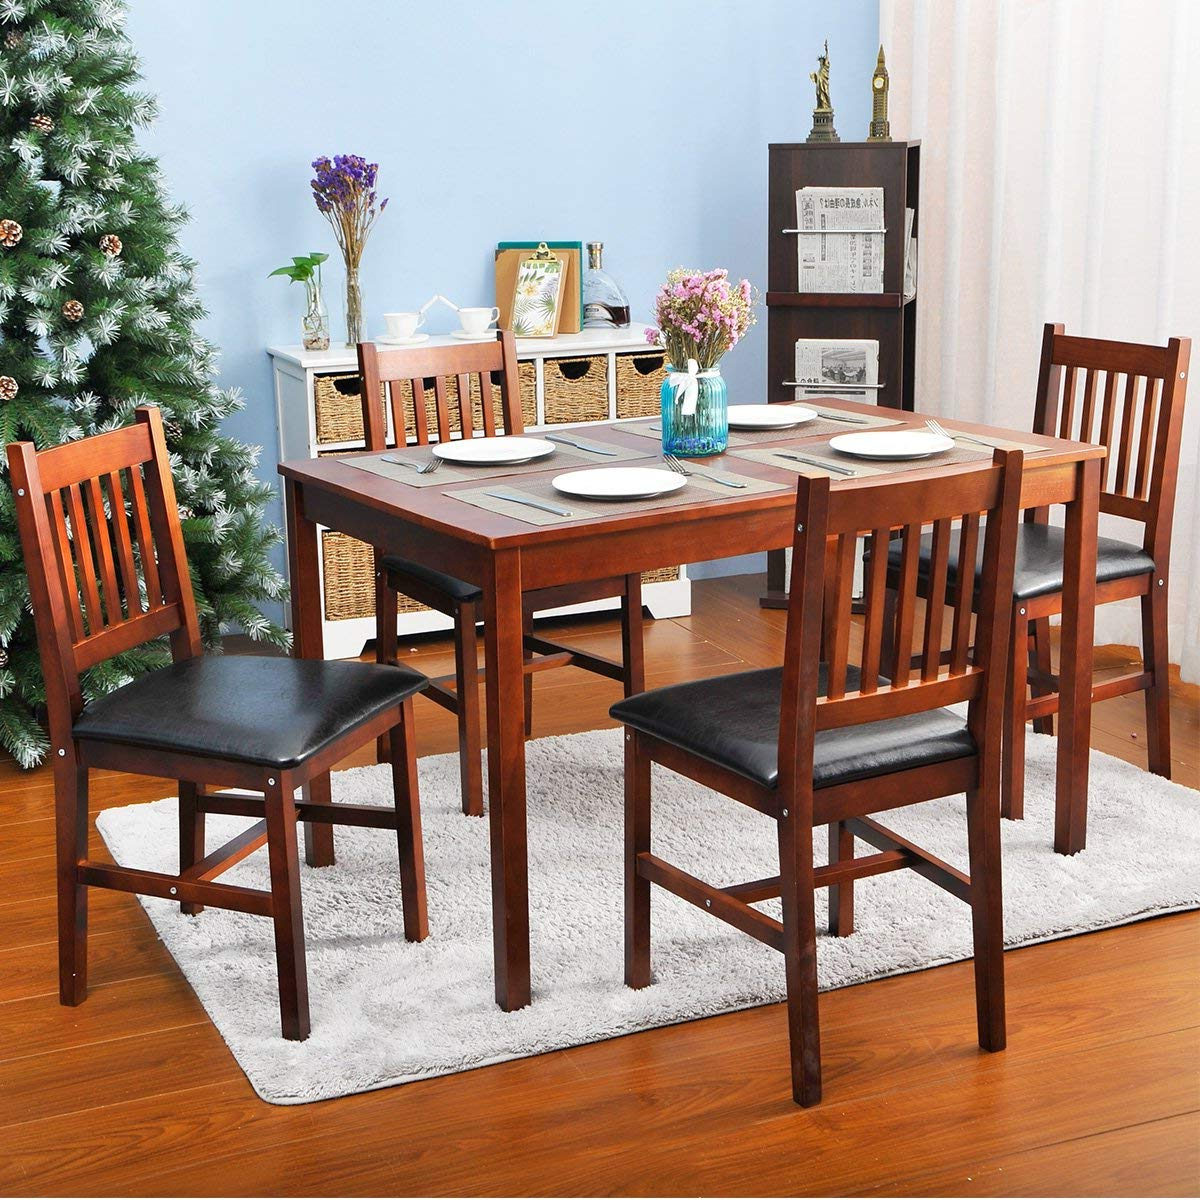 Best And Newest Dining Table Chair Set & Simple Living Olin Dining Sets Sc 1 St Intended For Kieffer 5 Piece Dining Sets (View 5 of 25)